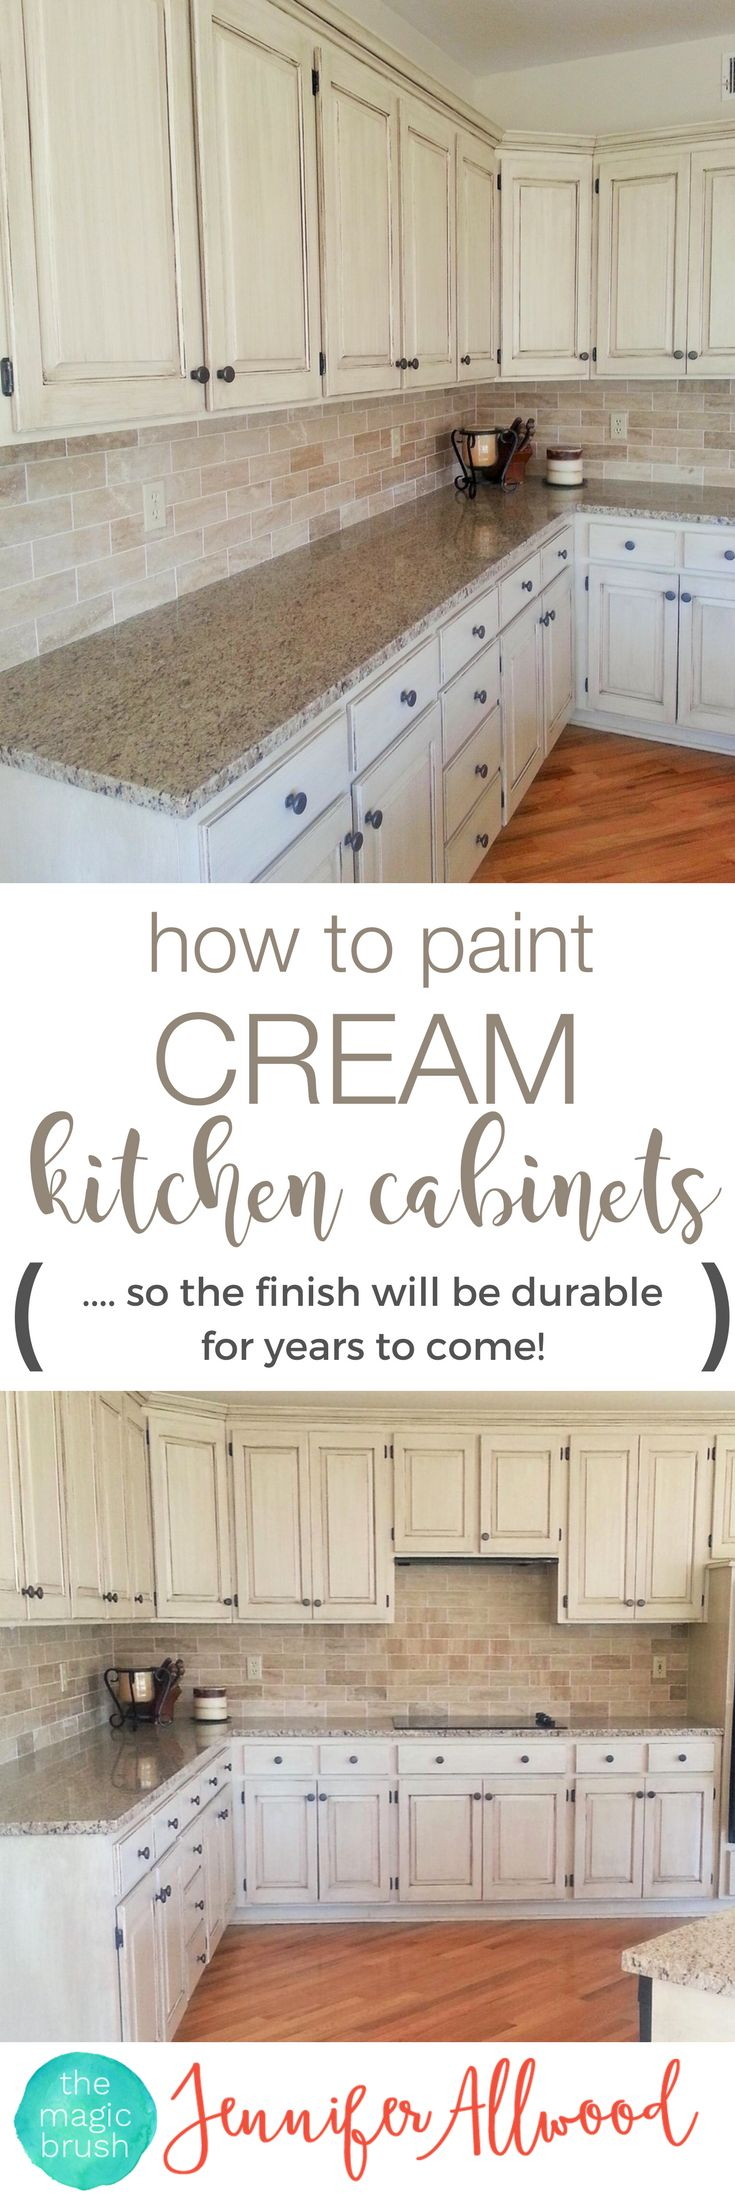 Top 25+ best Painted kitchen cabinets ideas on Pinterest ...